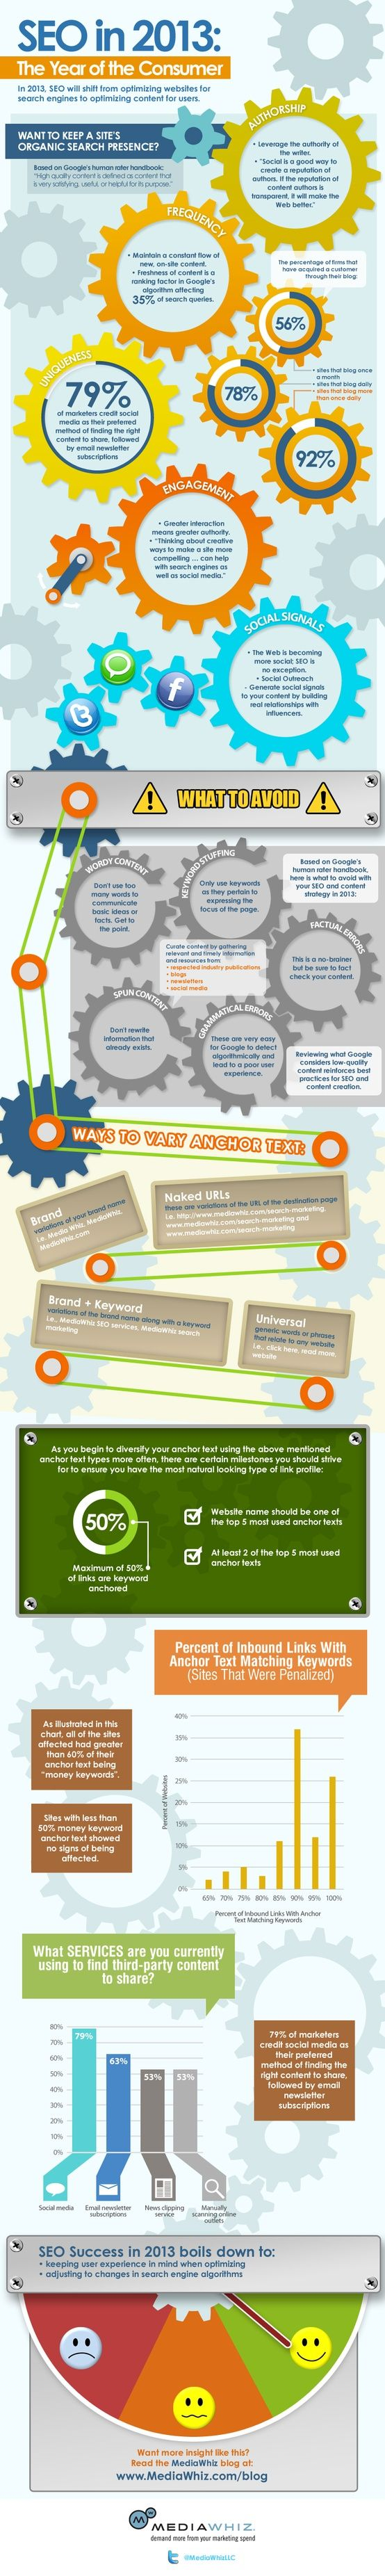 SEO in 2013 : the year of the consumer